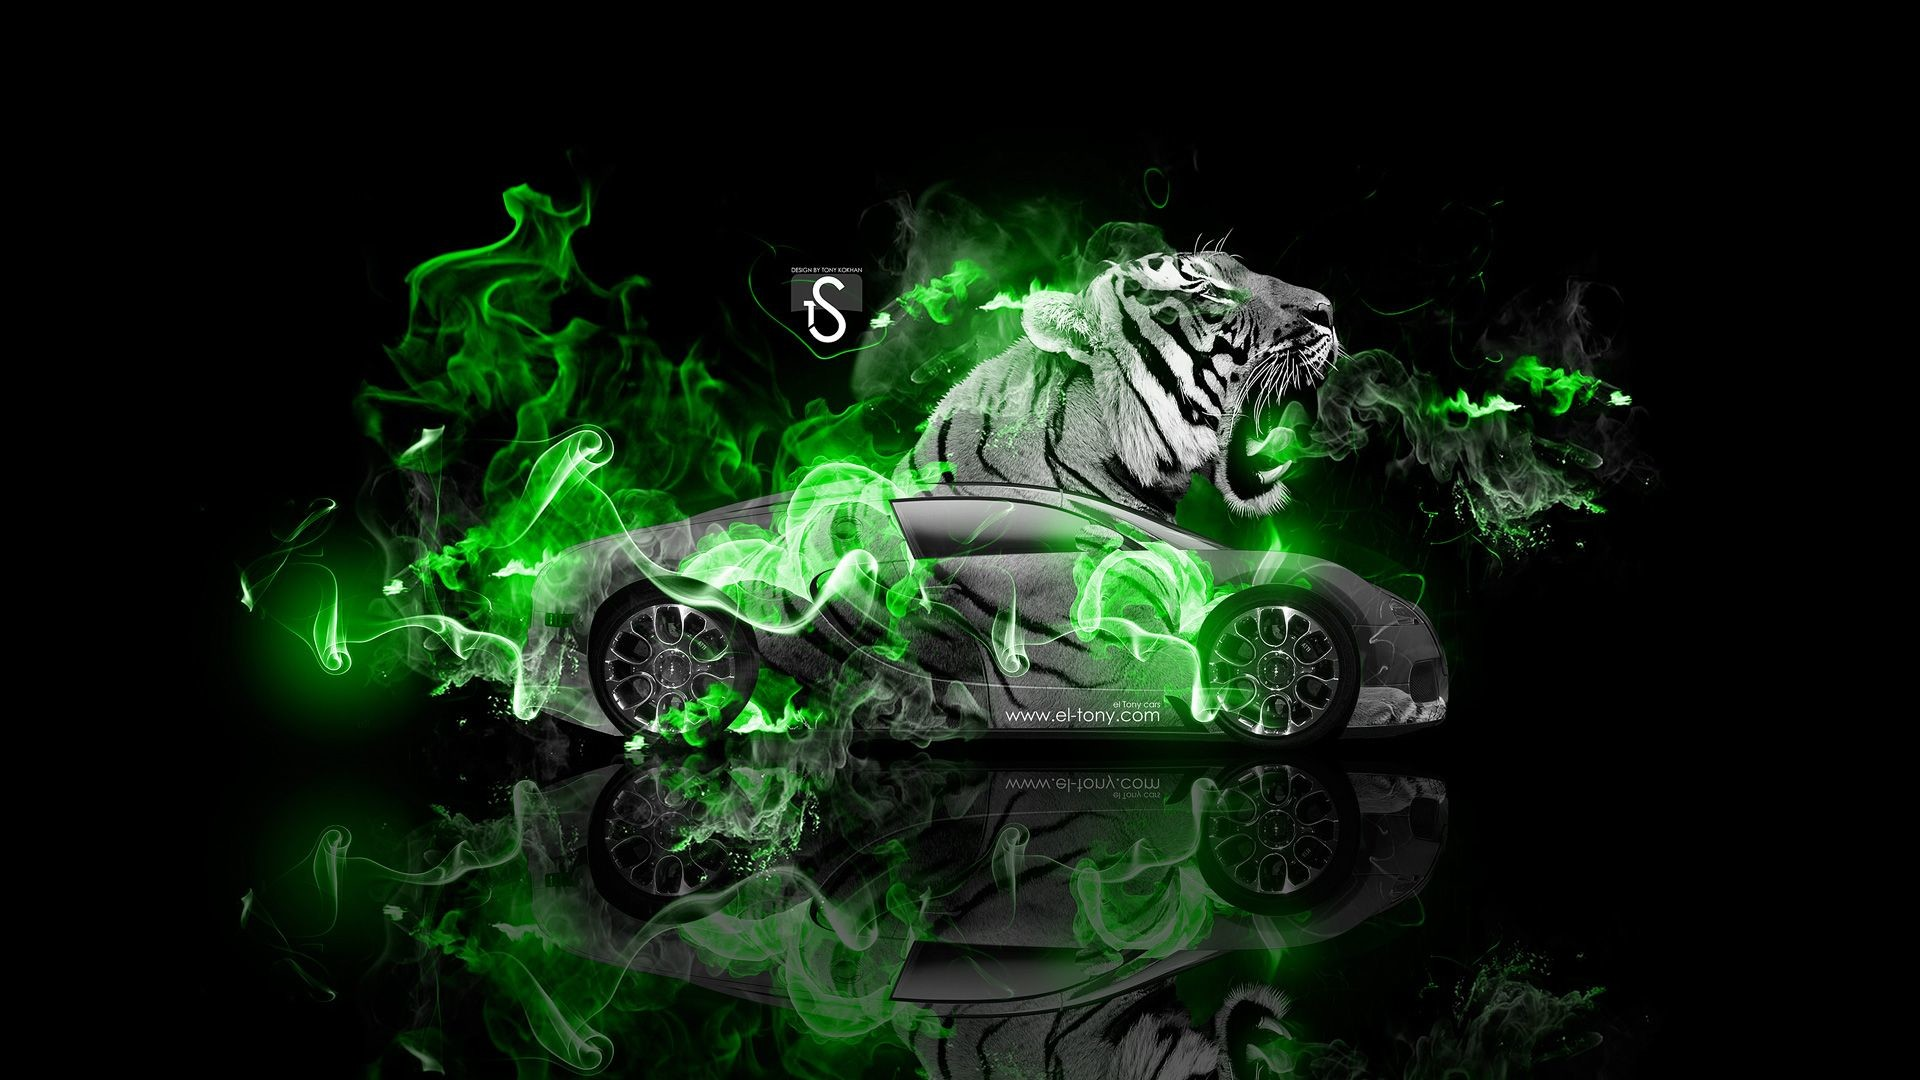 Res: 1920x1080, Bugatti Veyron Fantasy Tiger Fire Car 2014 Â« el Tony